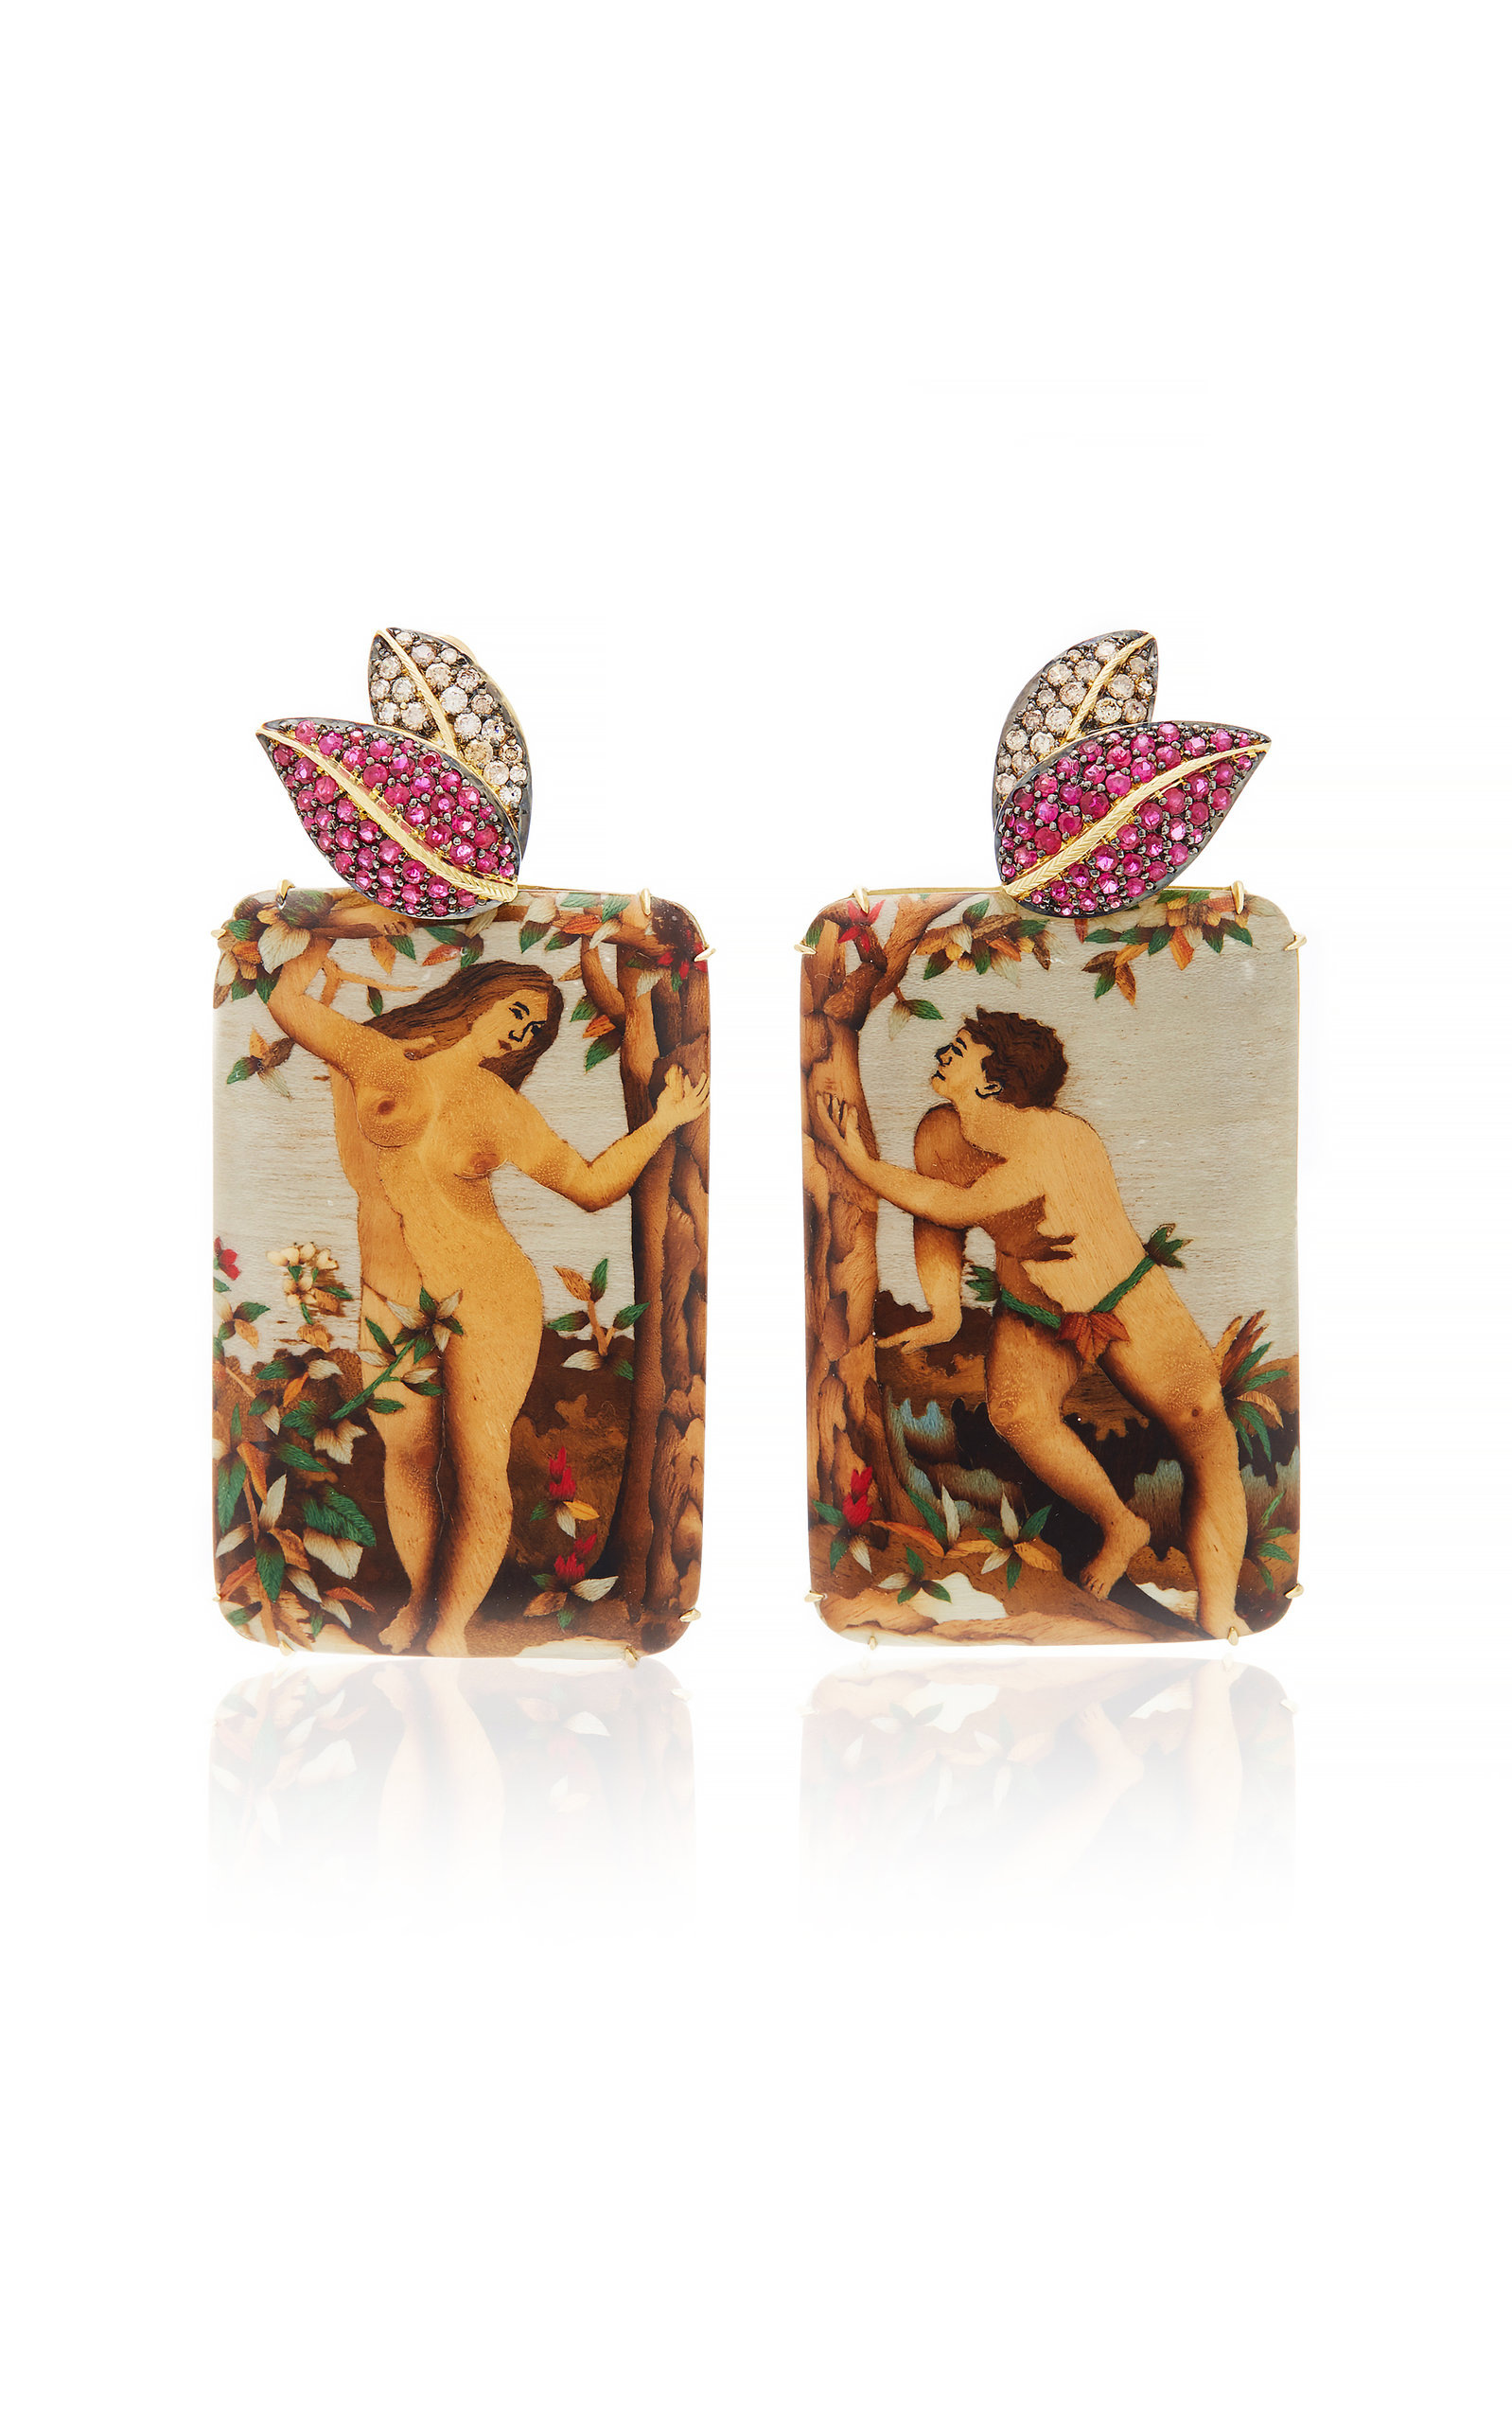 SILVIA FURMANOVICH MARQUETRY ADAM & EVE EARRINGS